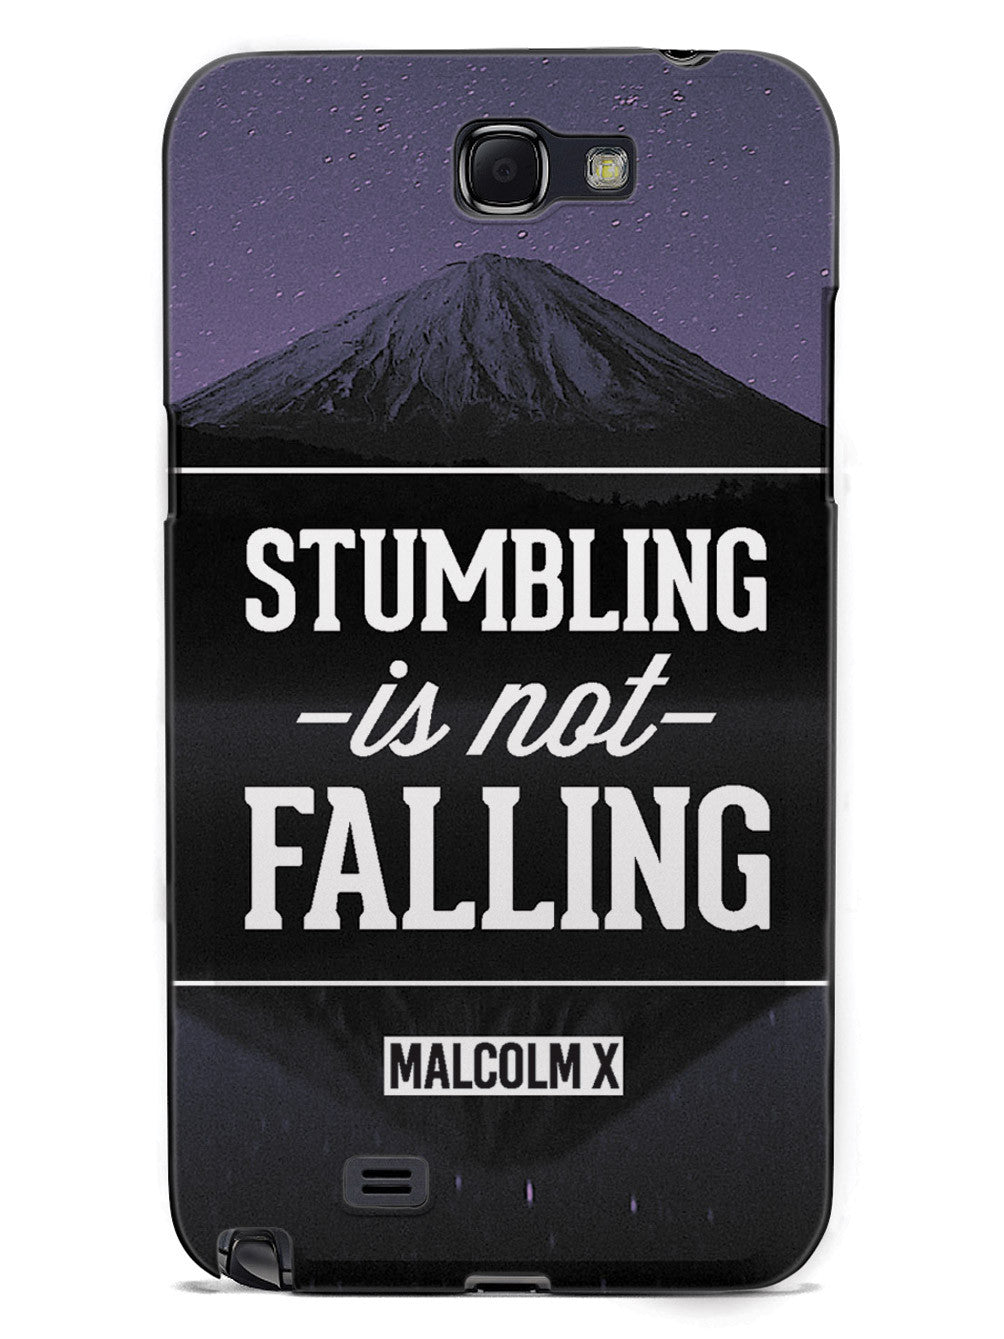 Stumbling Is Not Falling - Malcom X Case